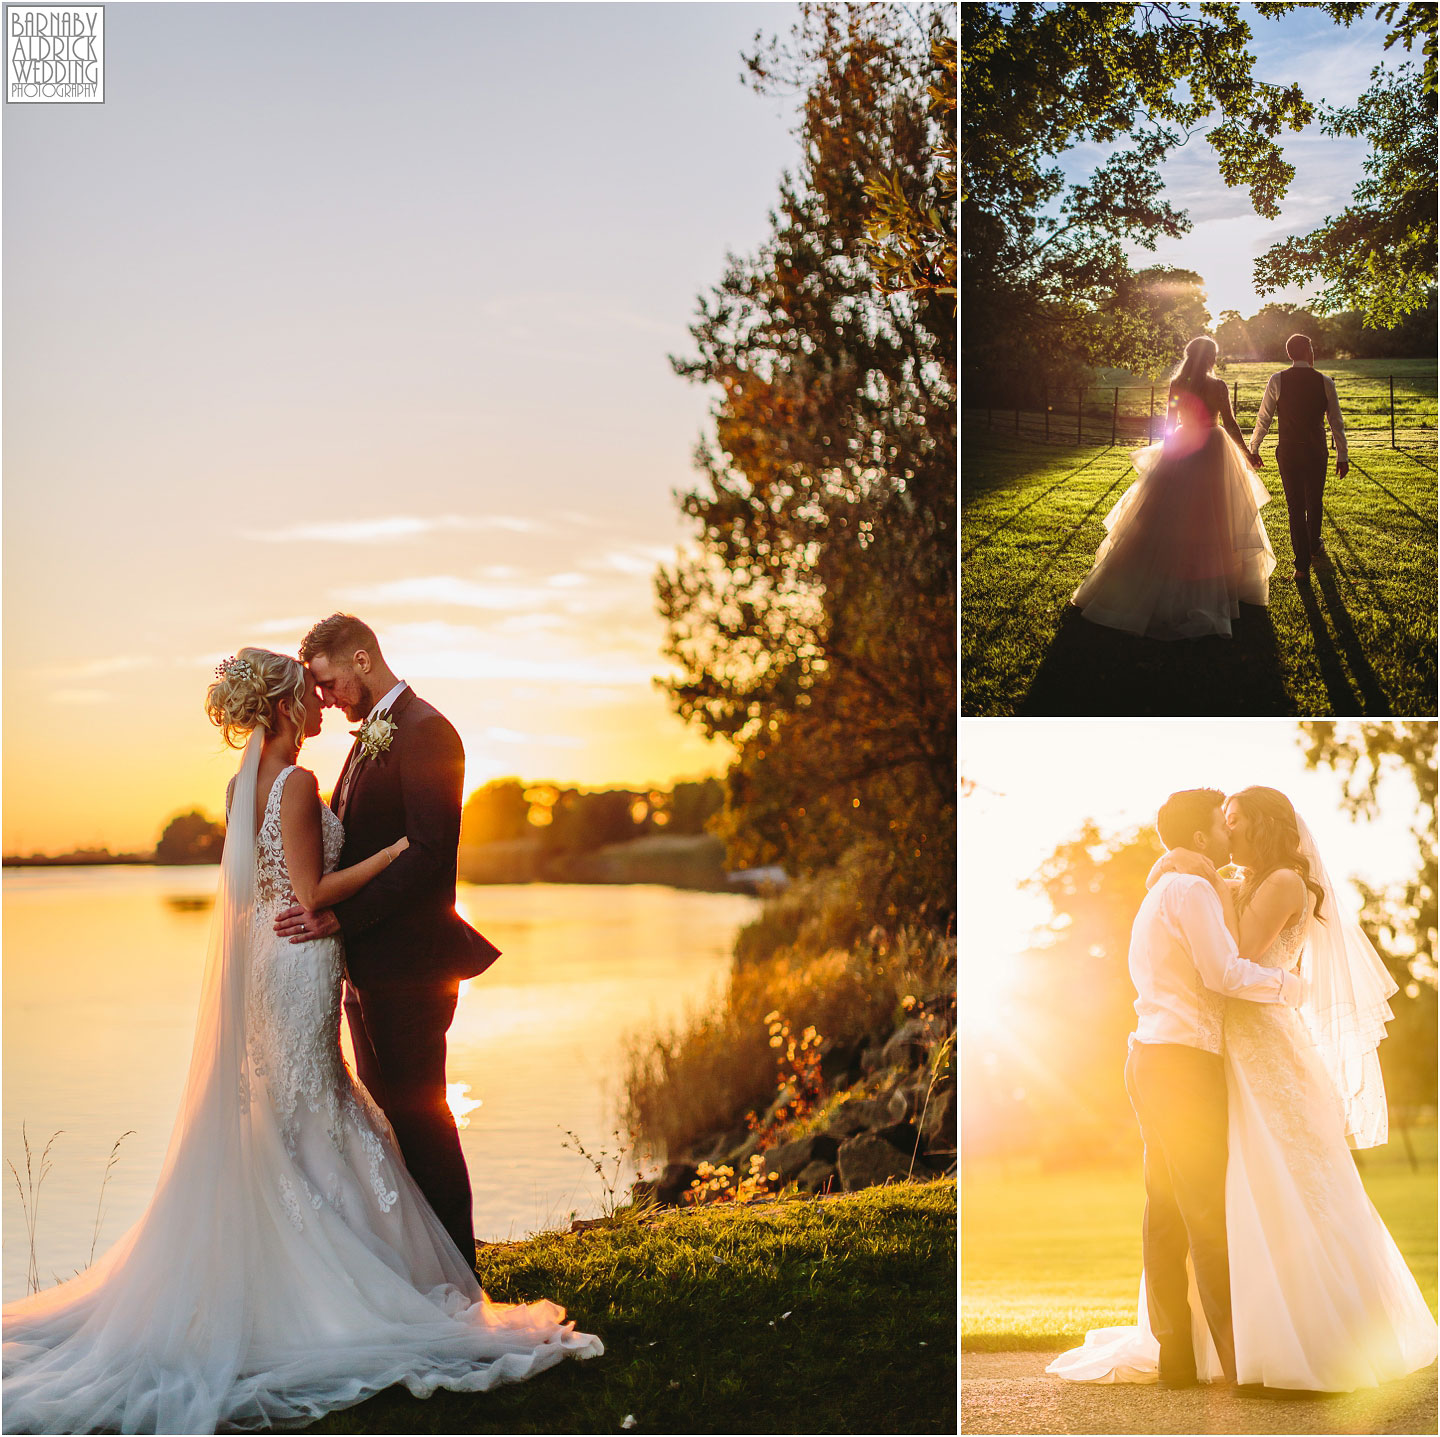 Sunset river photos at Saltmarshe Hall near Goole in East Yorkshire, Wedding photography at Saltmarshe Hall, East Yorkshire Wedding Photographer Barnaby Aldrick